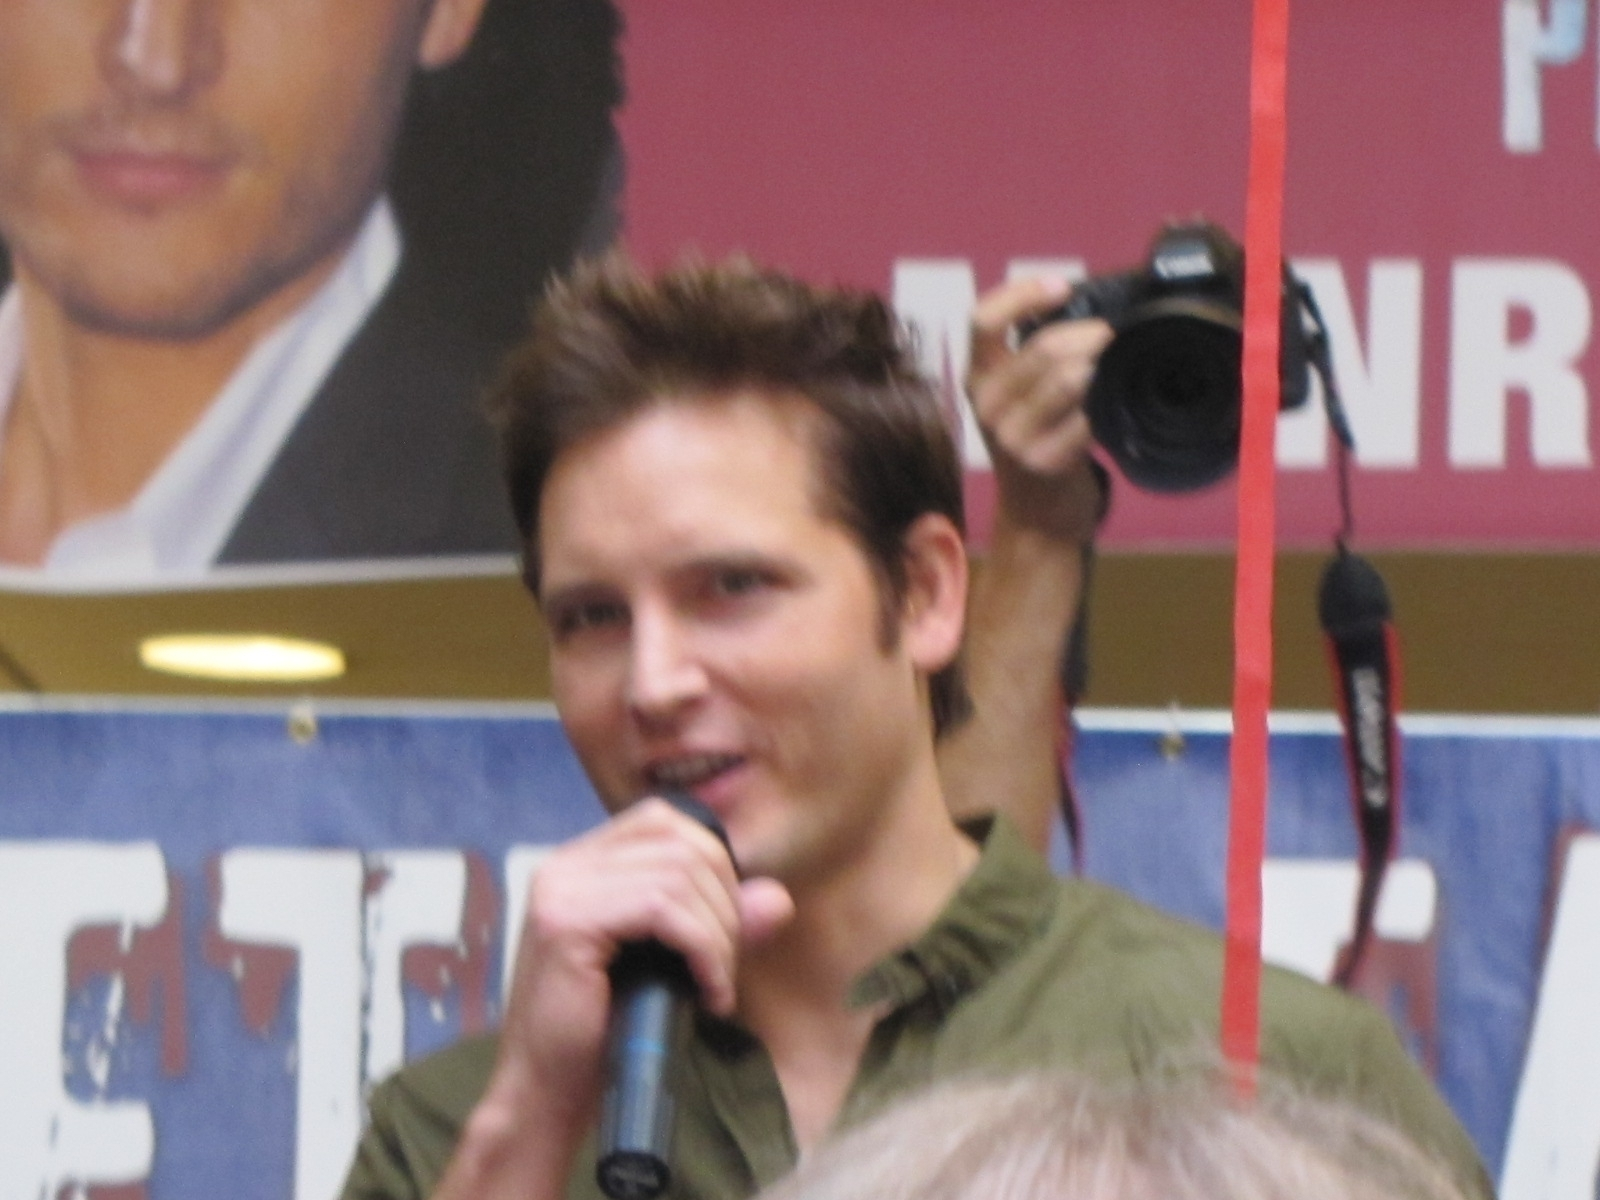 Peter Facinelli in Michigan